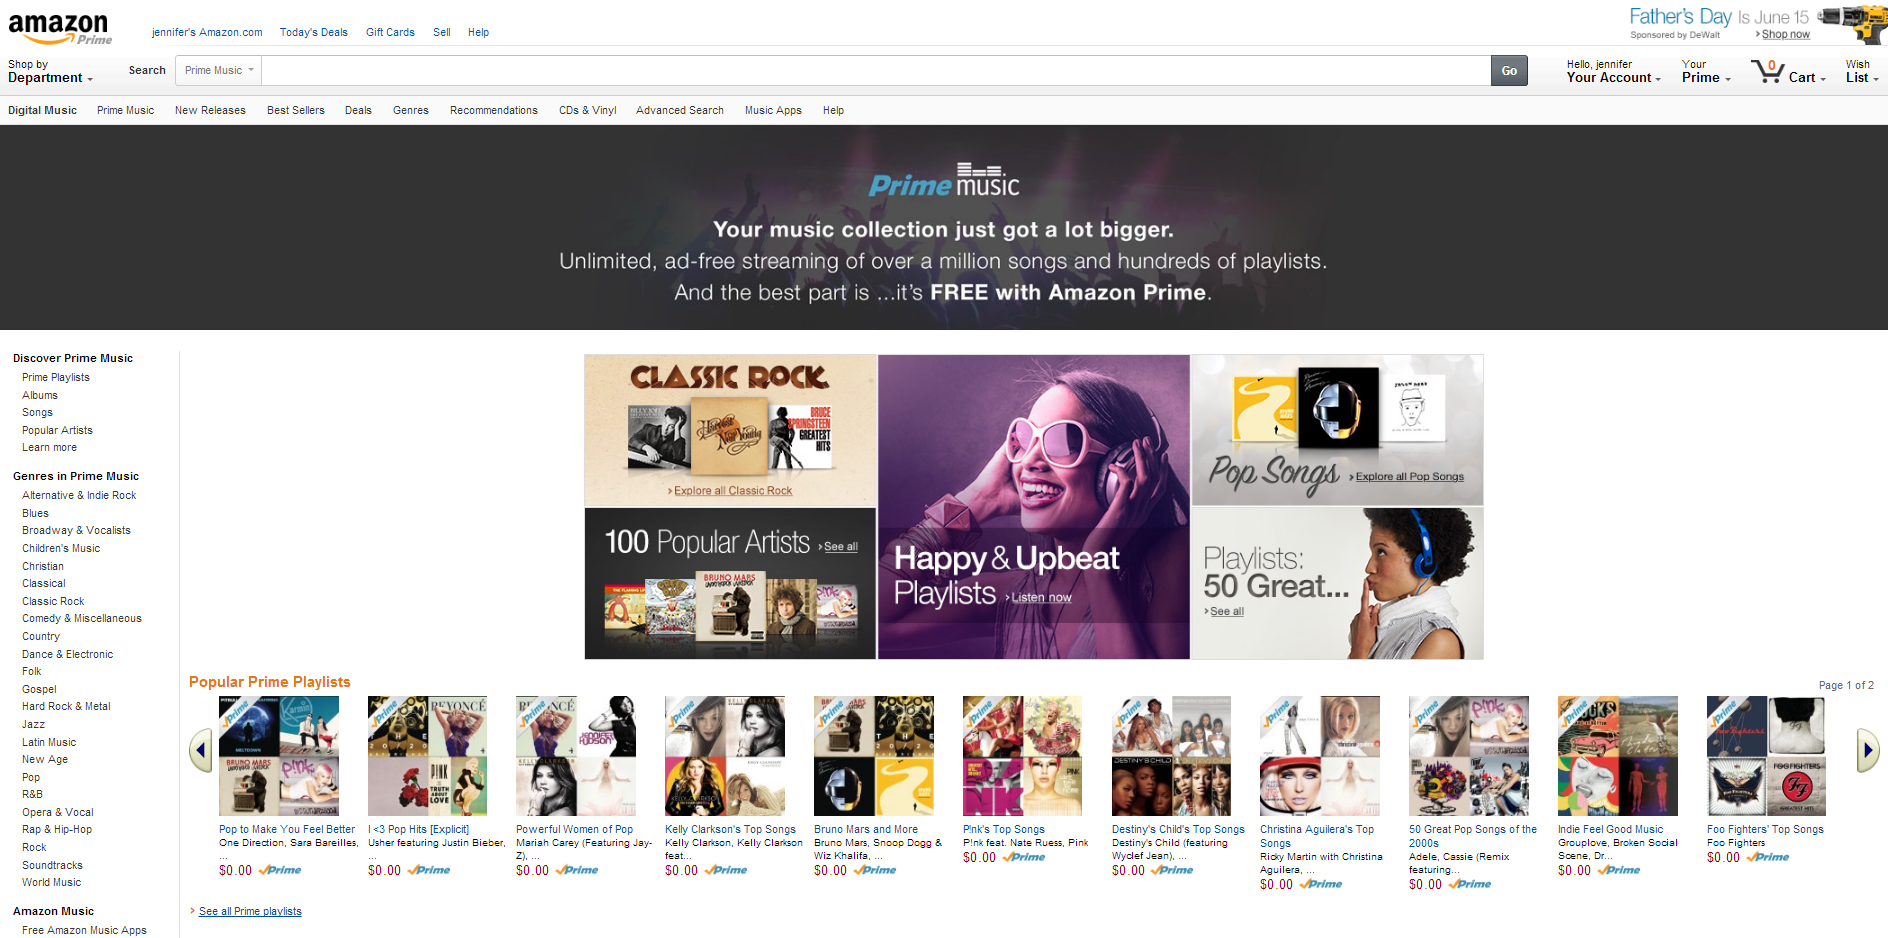 Amazon launches Prime Music, a free song streaming service for Prime